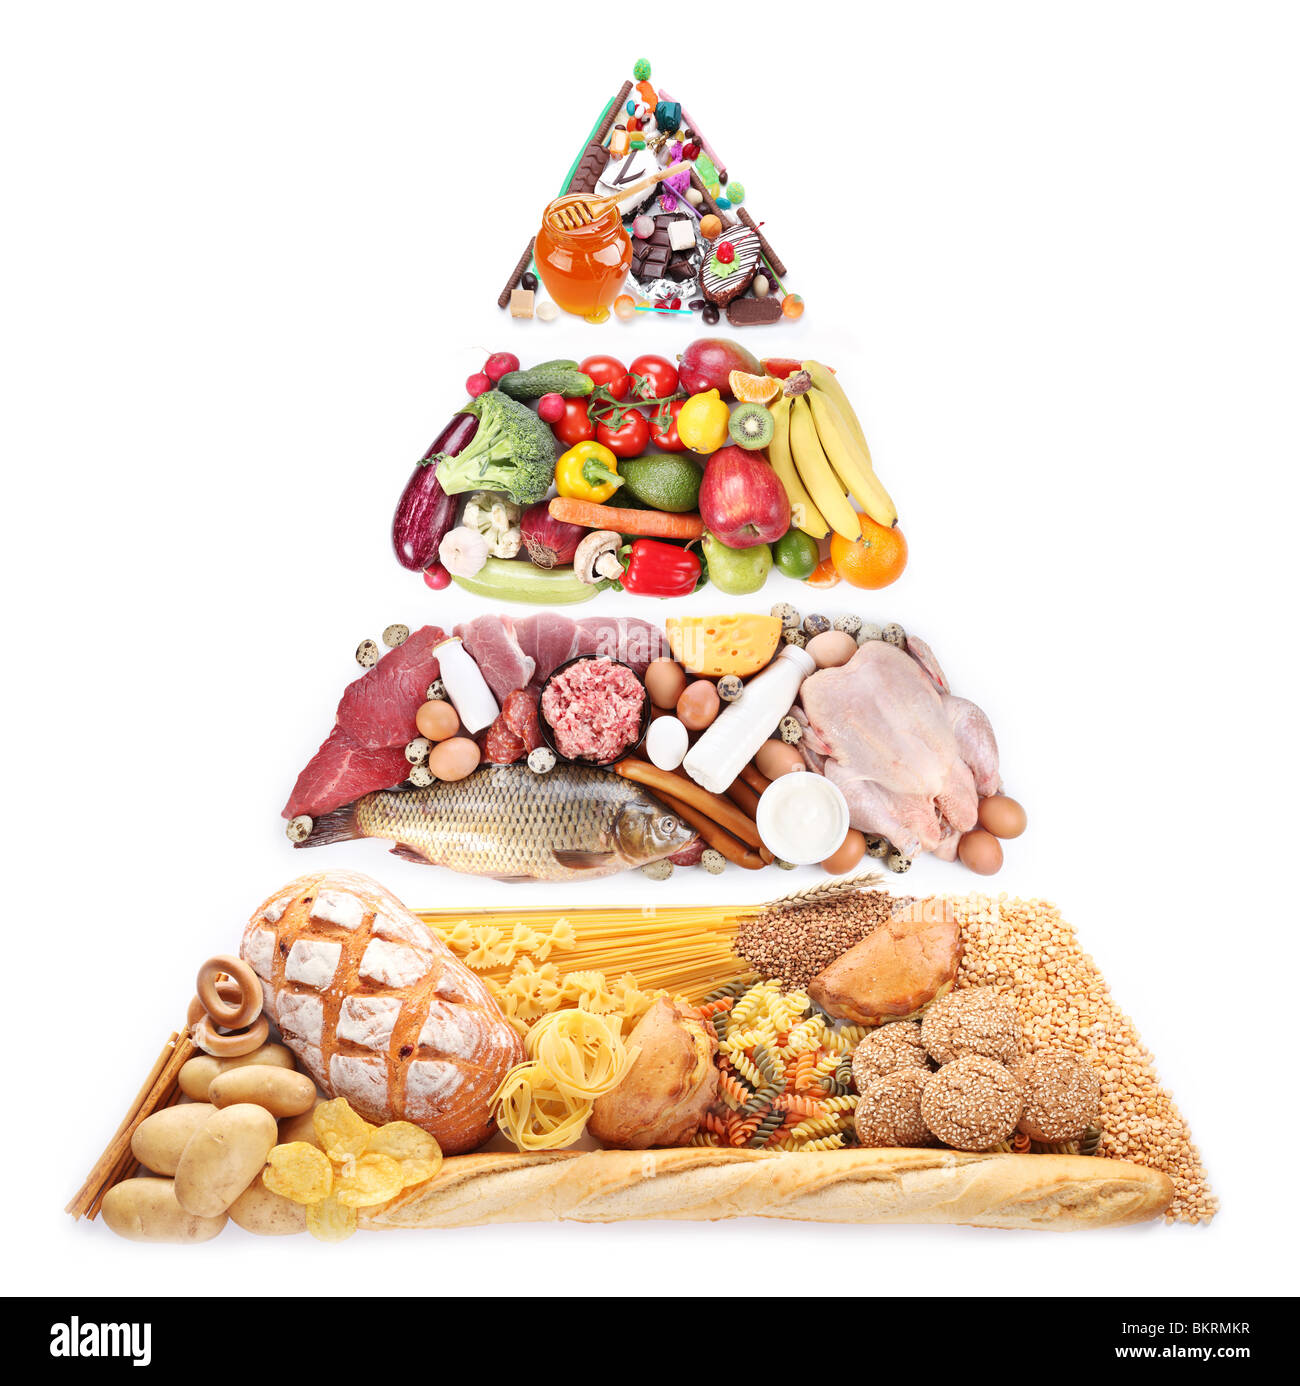 Pyramide des aliments pour une alimentation équilibrée. Isolated on white Photo Stock